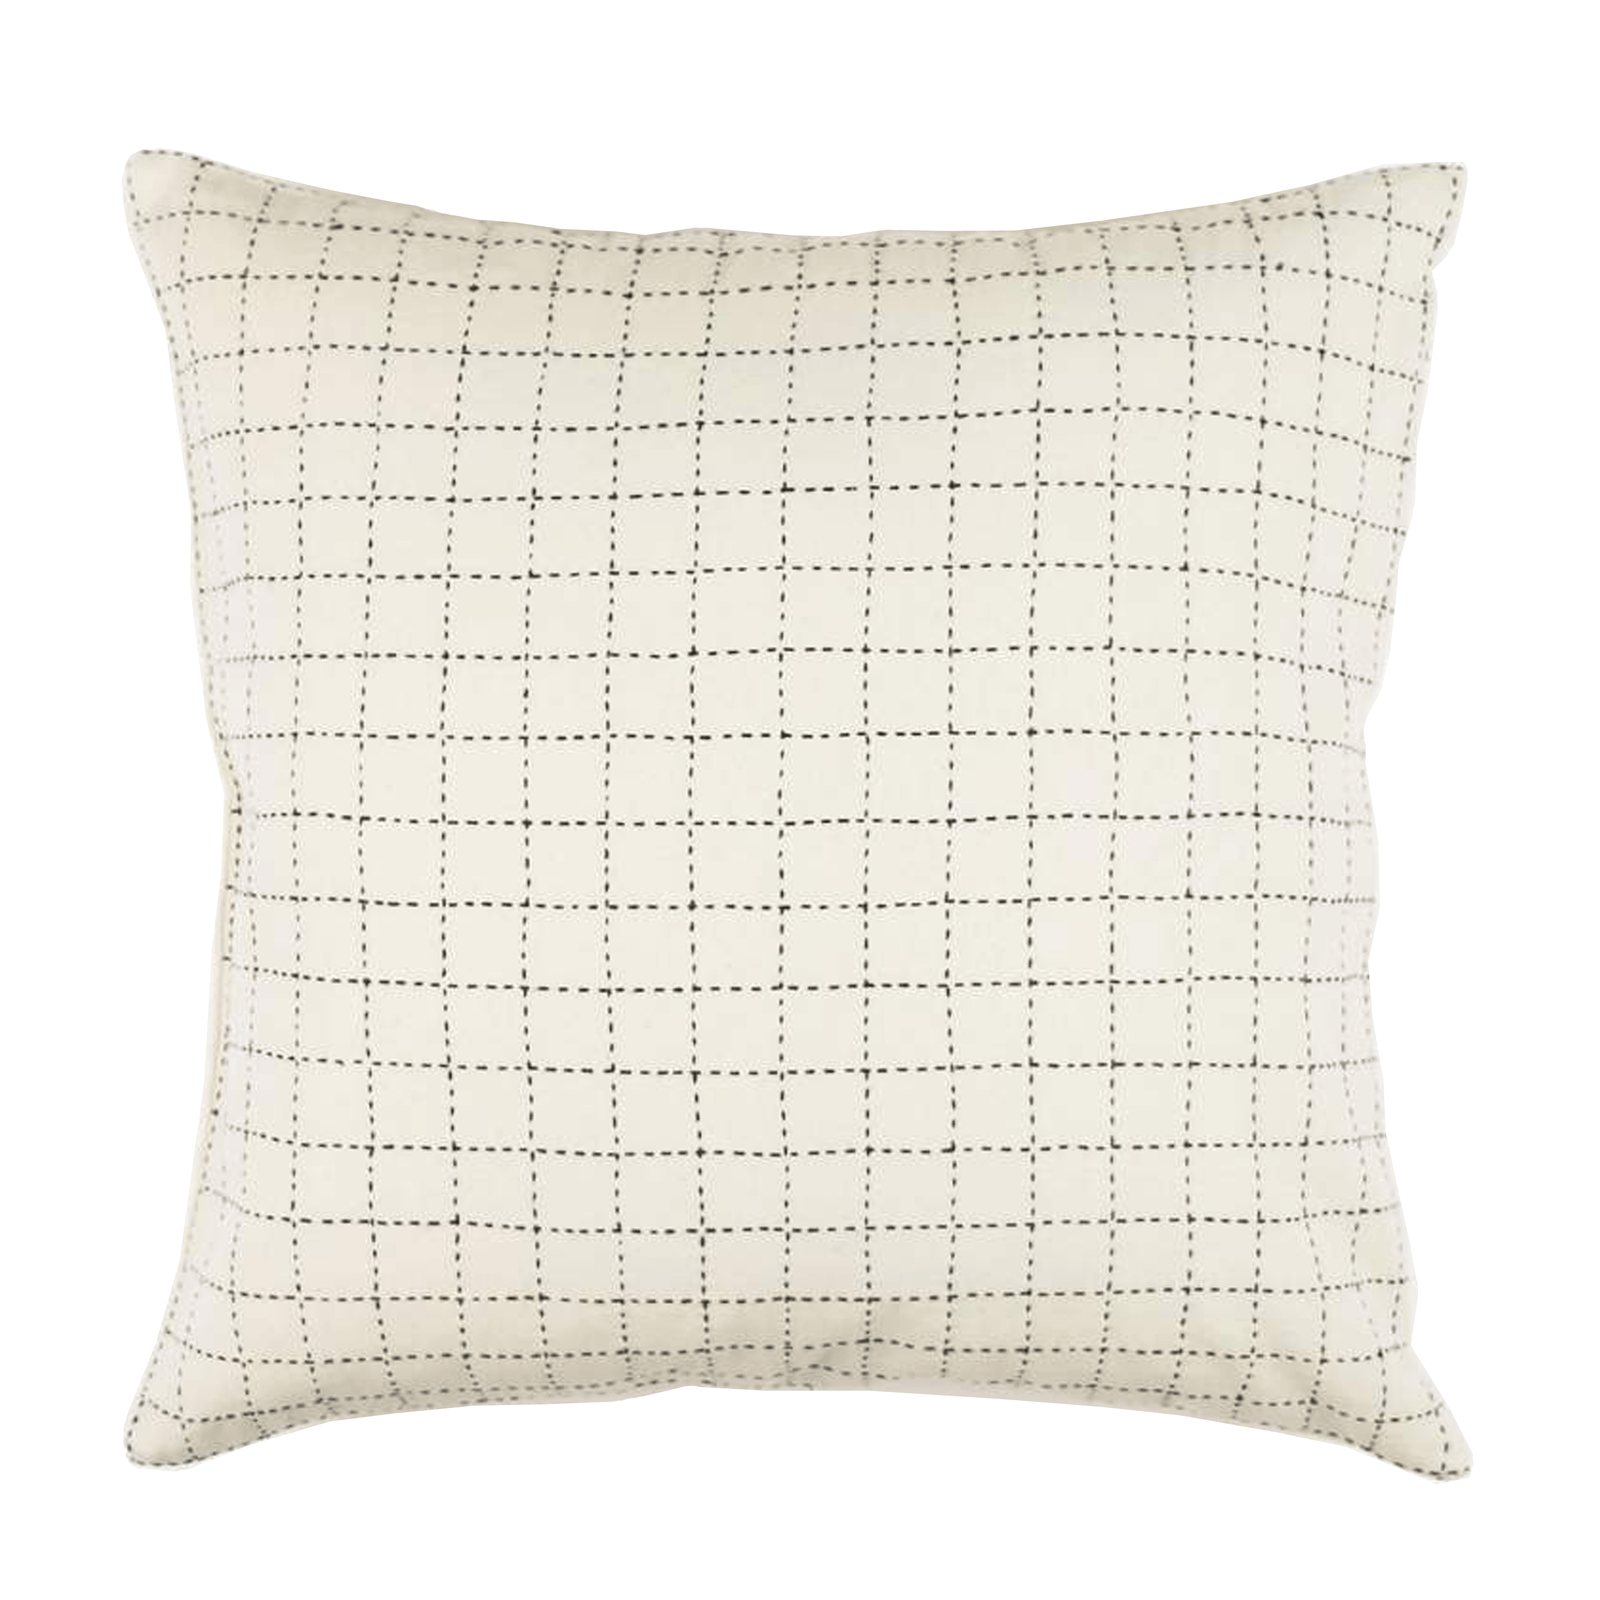 Anchal Pillow Mini Grid-Stitch Throw Pillow